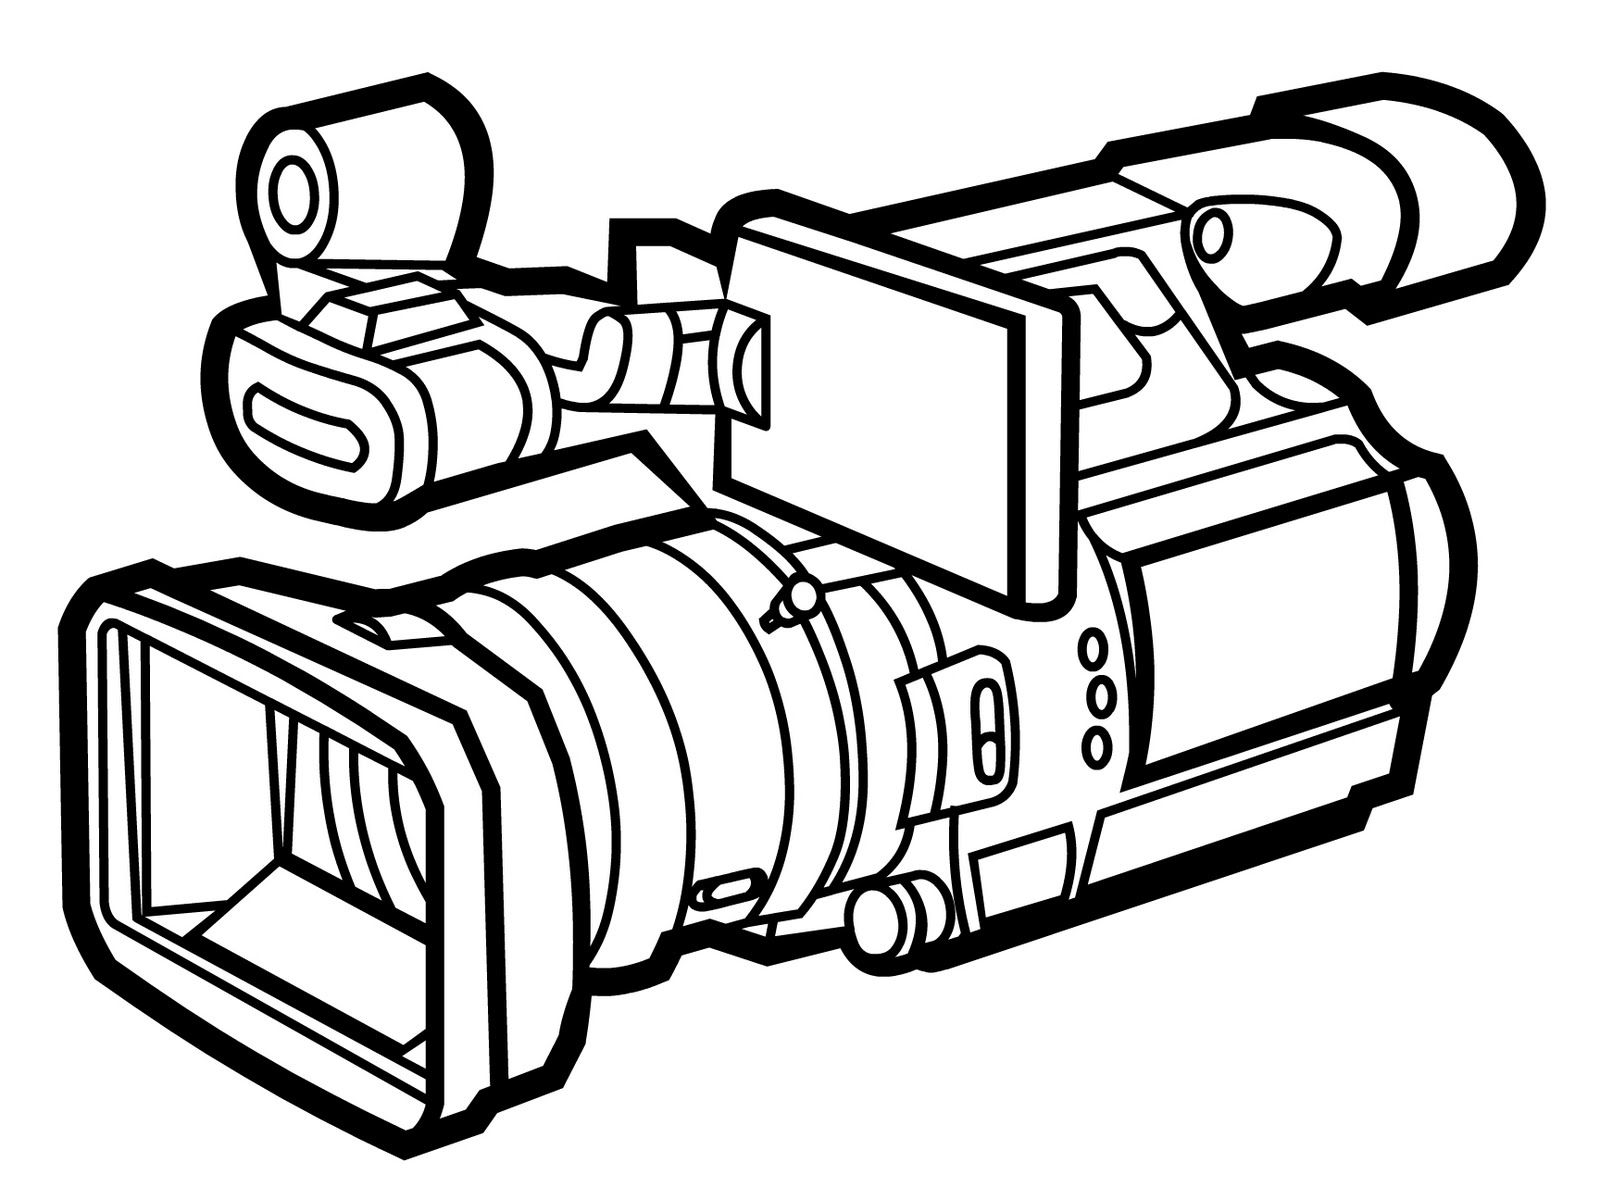 Images For Clip Art Video Camera-Images For Clip Art Video Camera-8